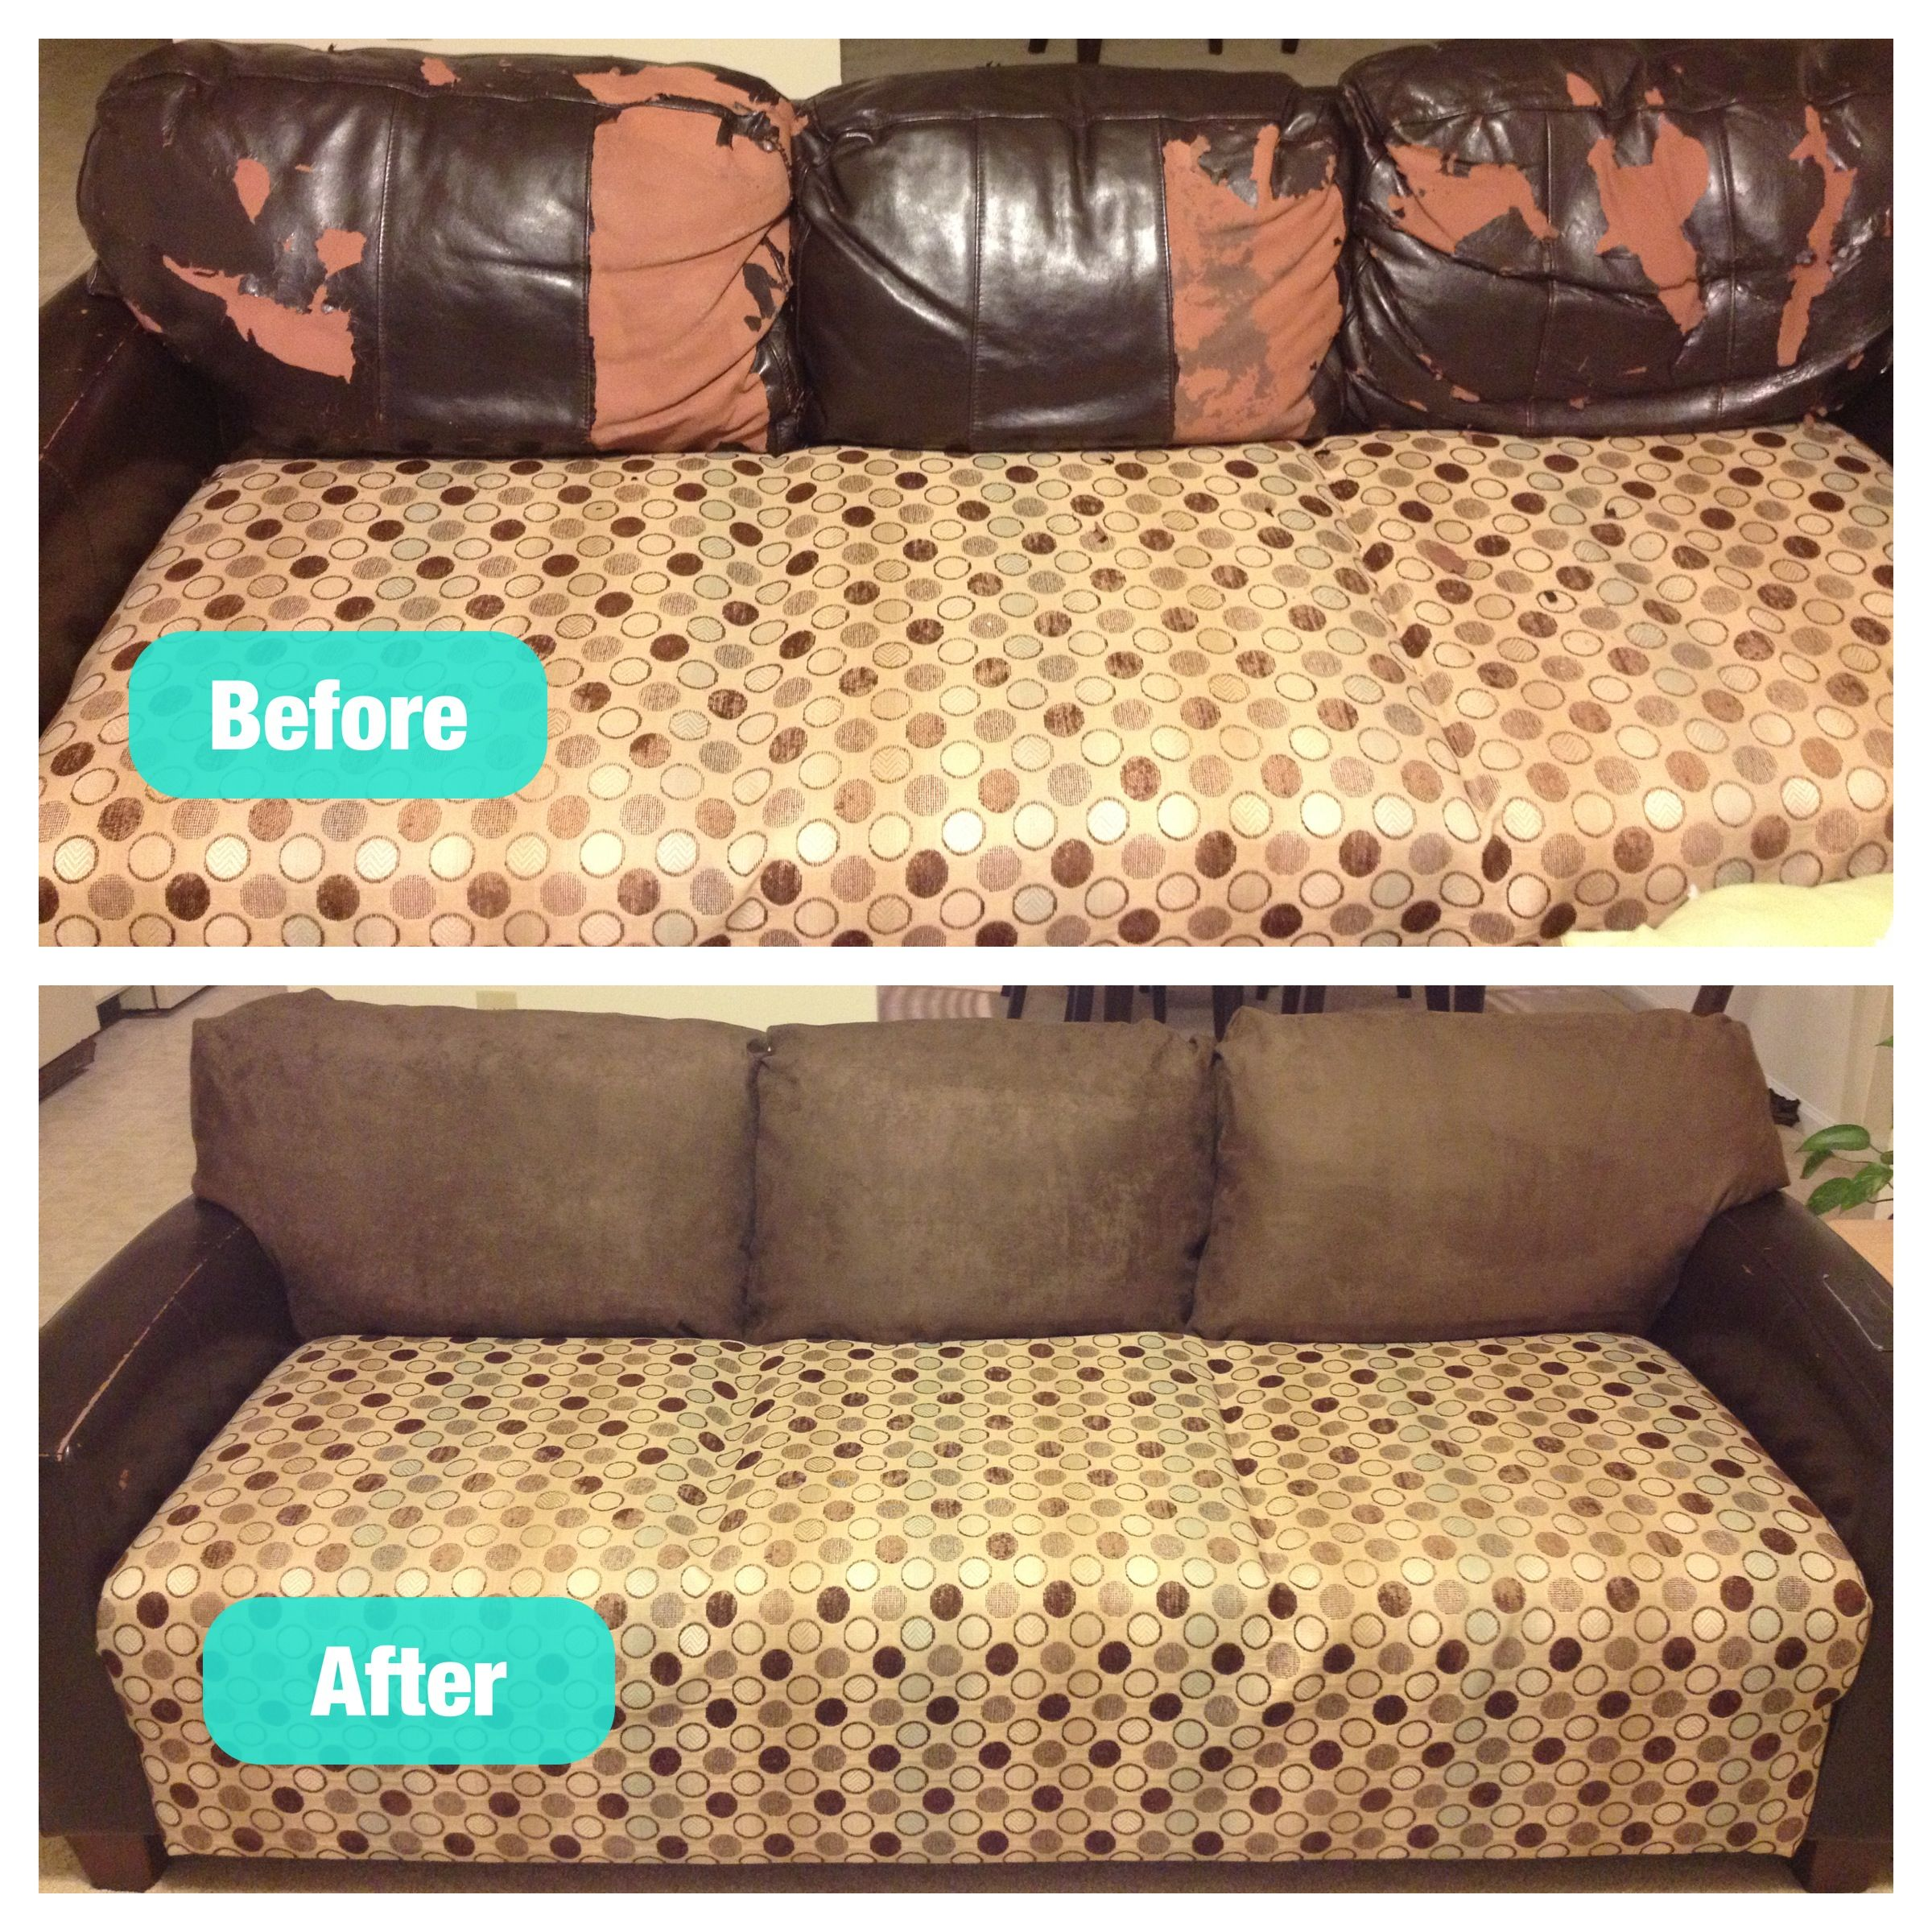 Leather Sofa Makeover Fixed My Peeling Leather Couch Cushions For Under 60 Not Bad For